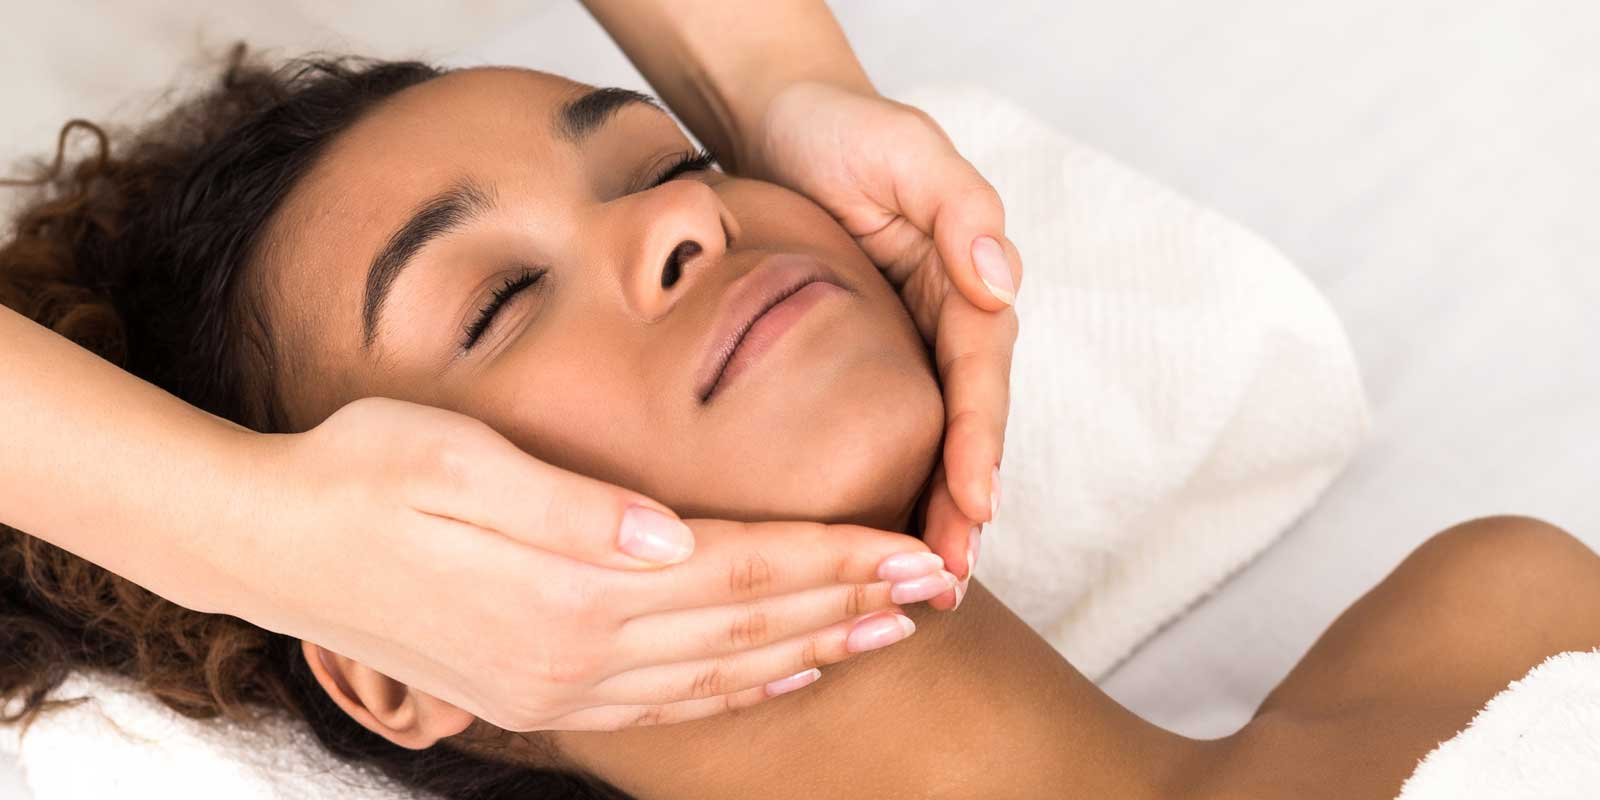 Lady getting a facial massage